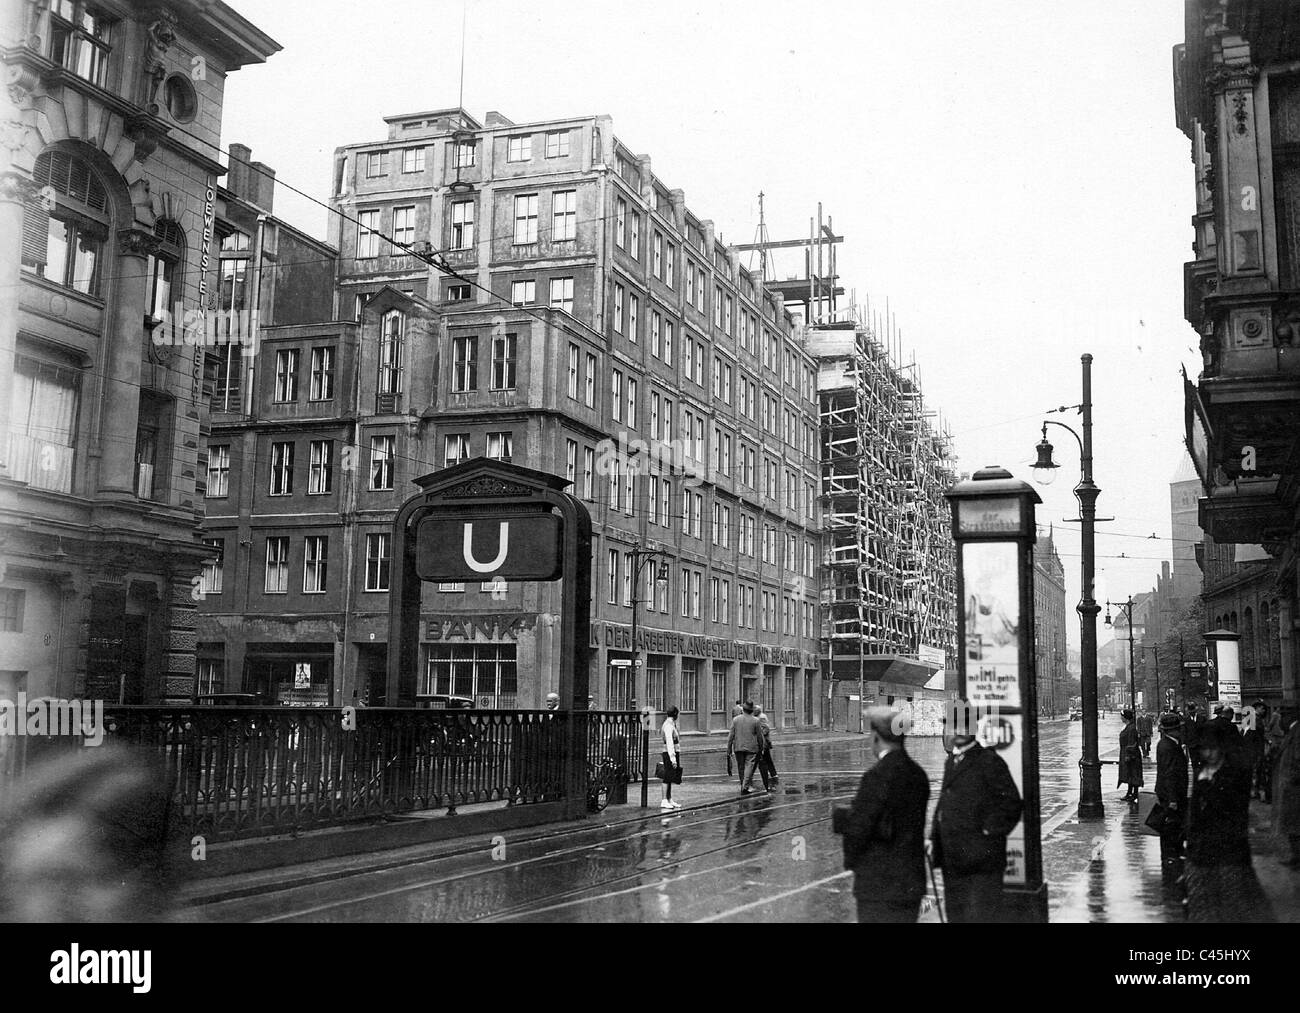 House of Free Trade Unions in Berlin, 1931 - Stock Image